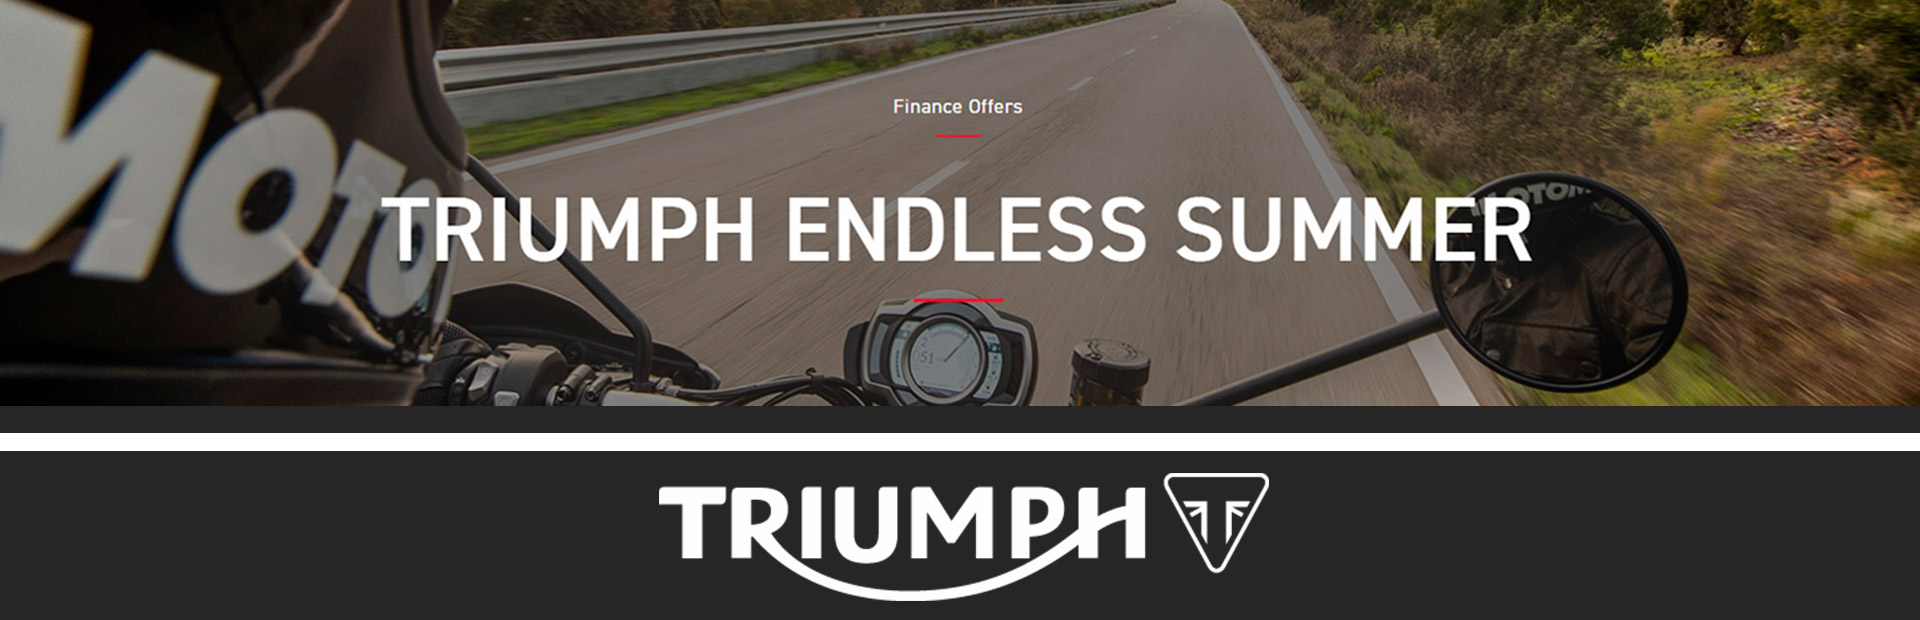 Triumph: TRIUMPH ENDLESS SUMMER